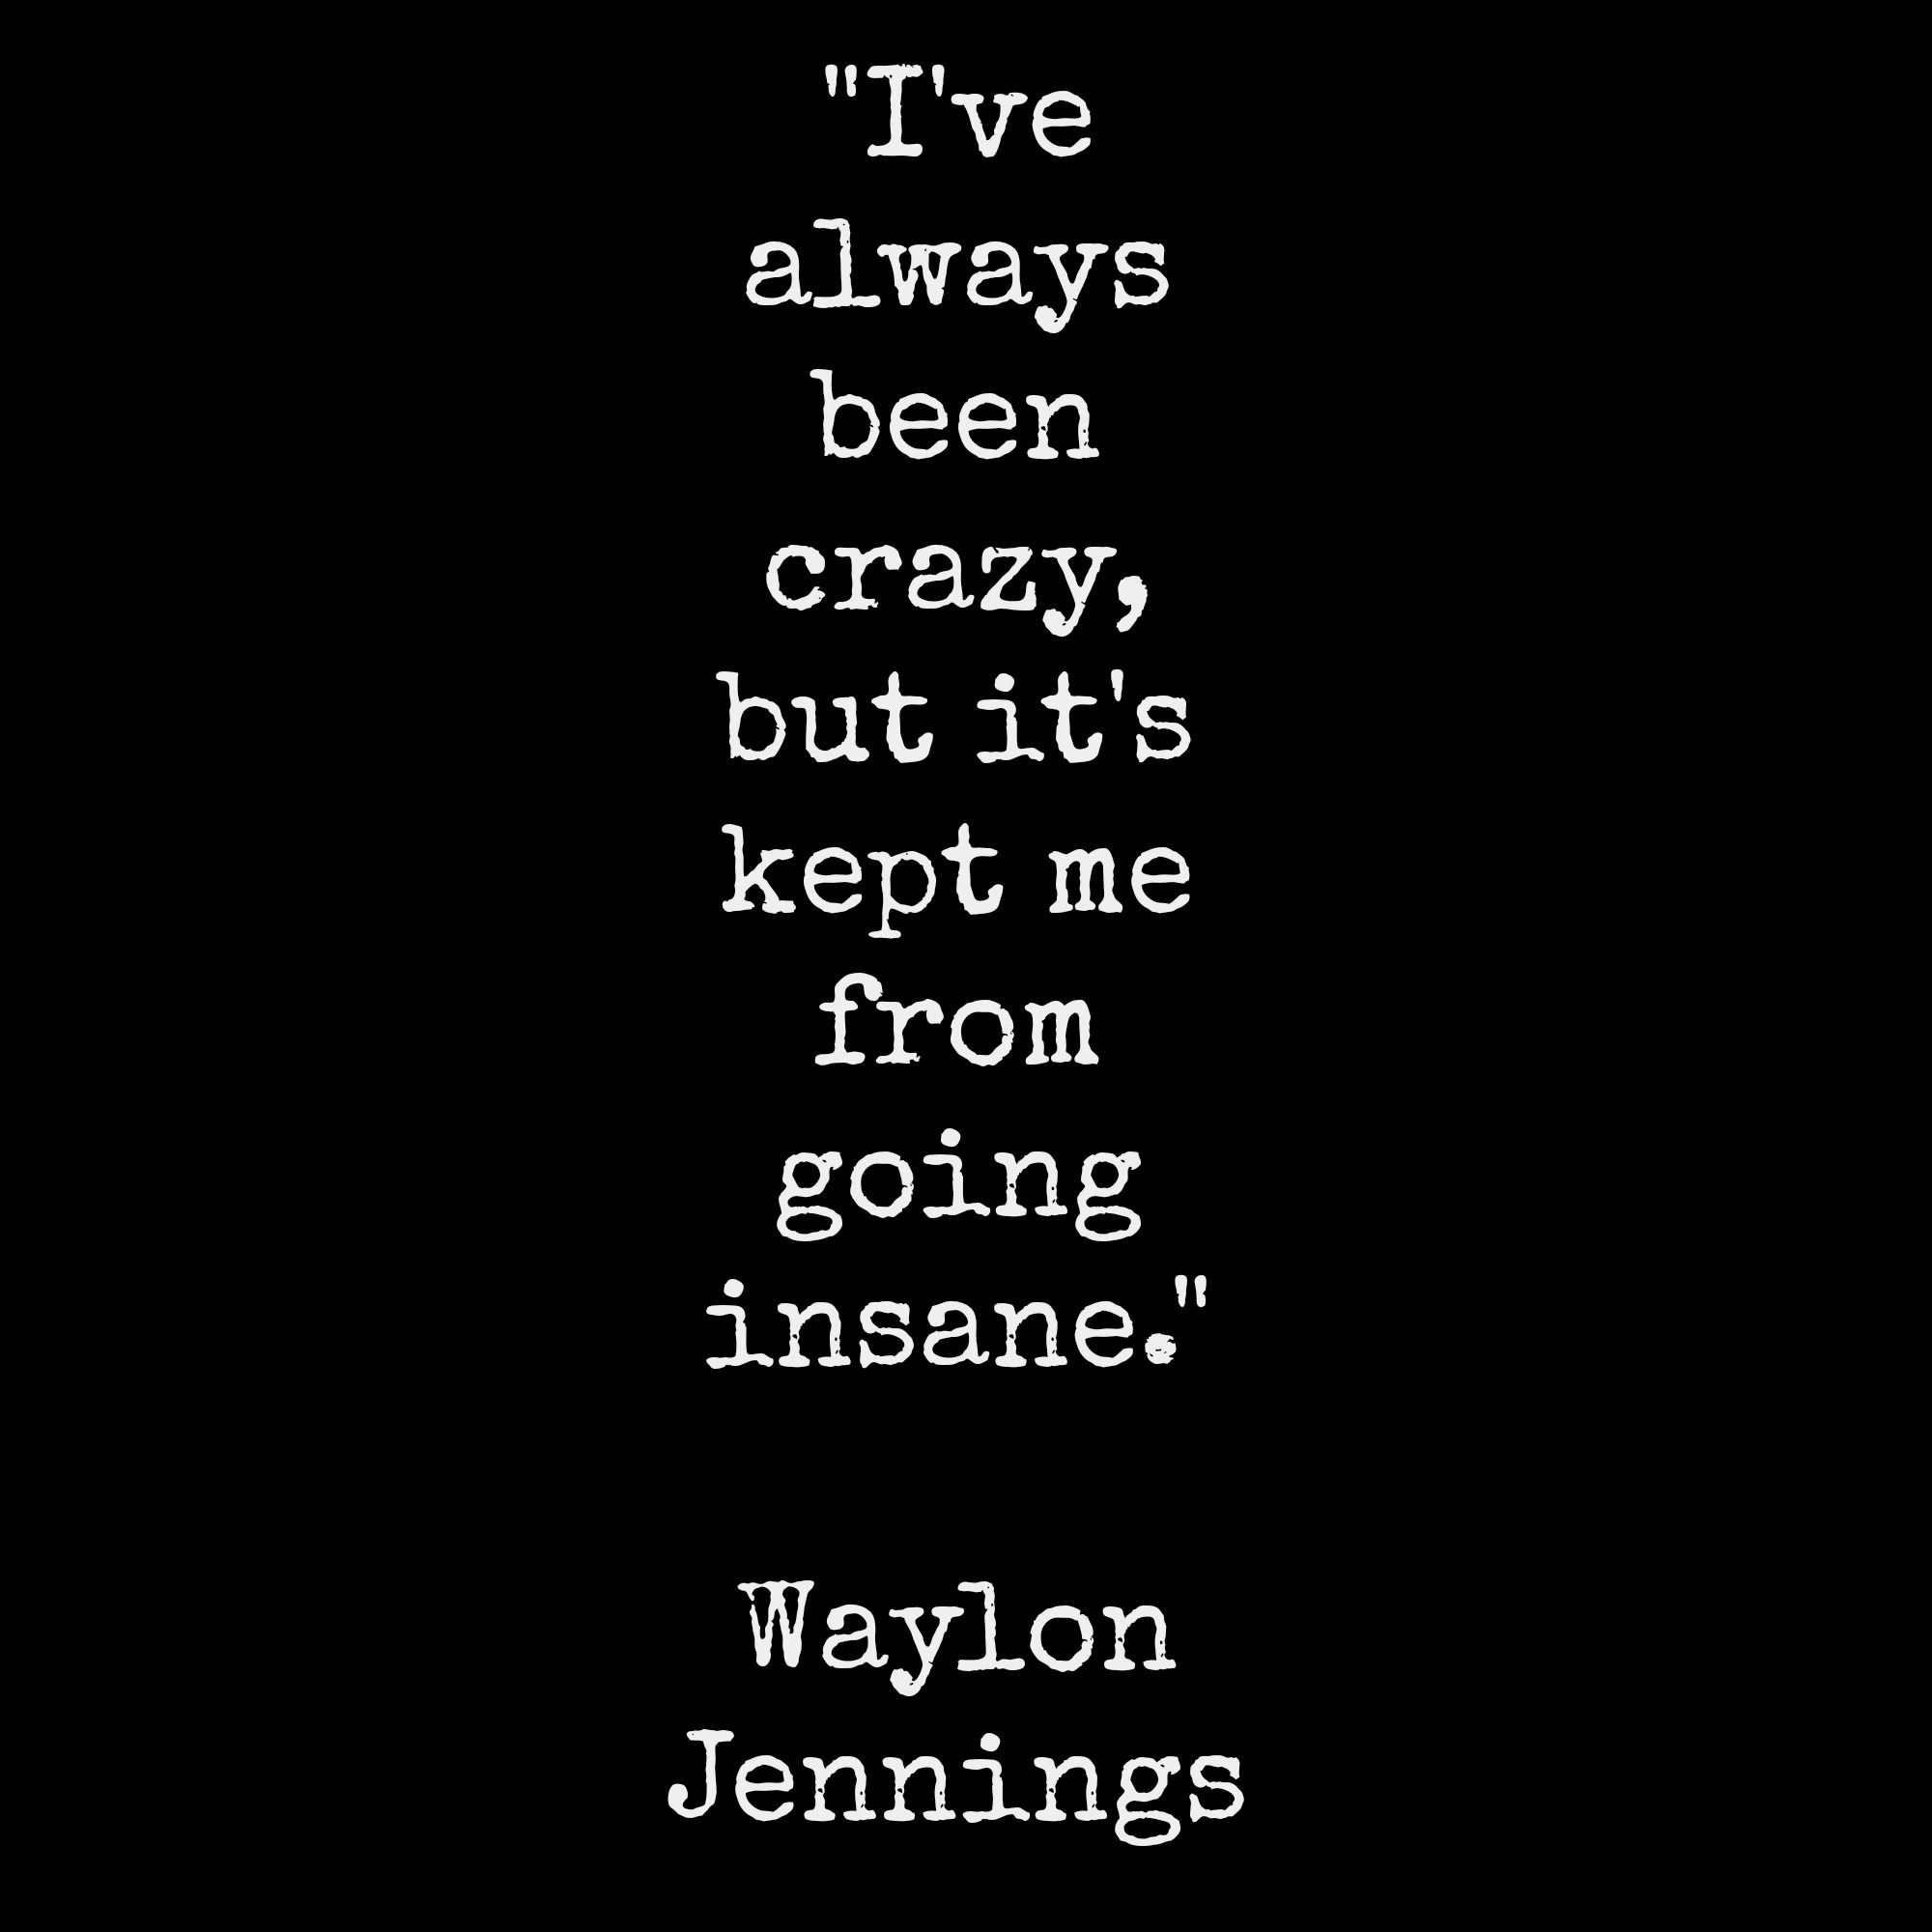 I Ve Always Been Crazy But It S Kept Me From Going Insane Waylon Jennings 4 3 Crazy Lyrics Quotes To Live By Important Quotes